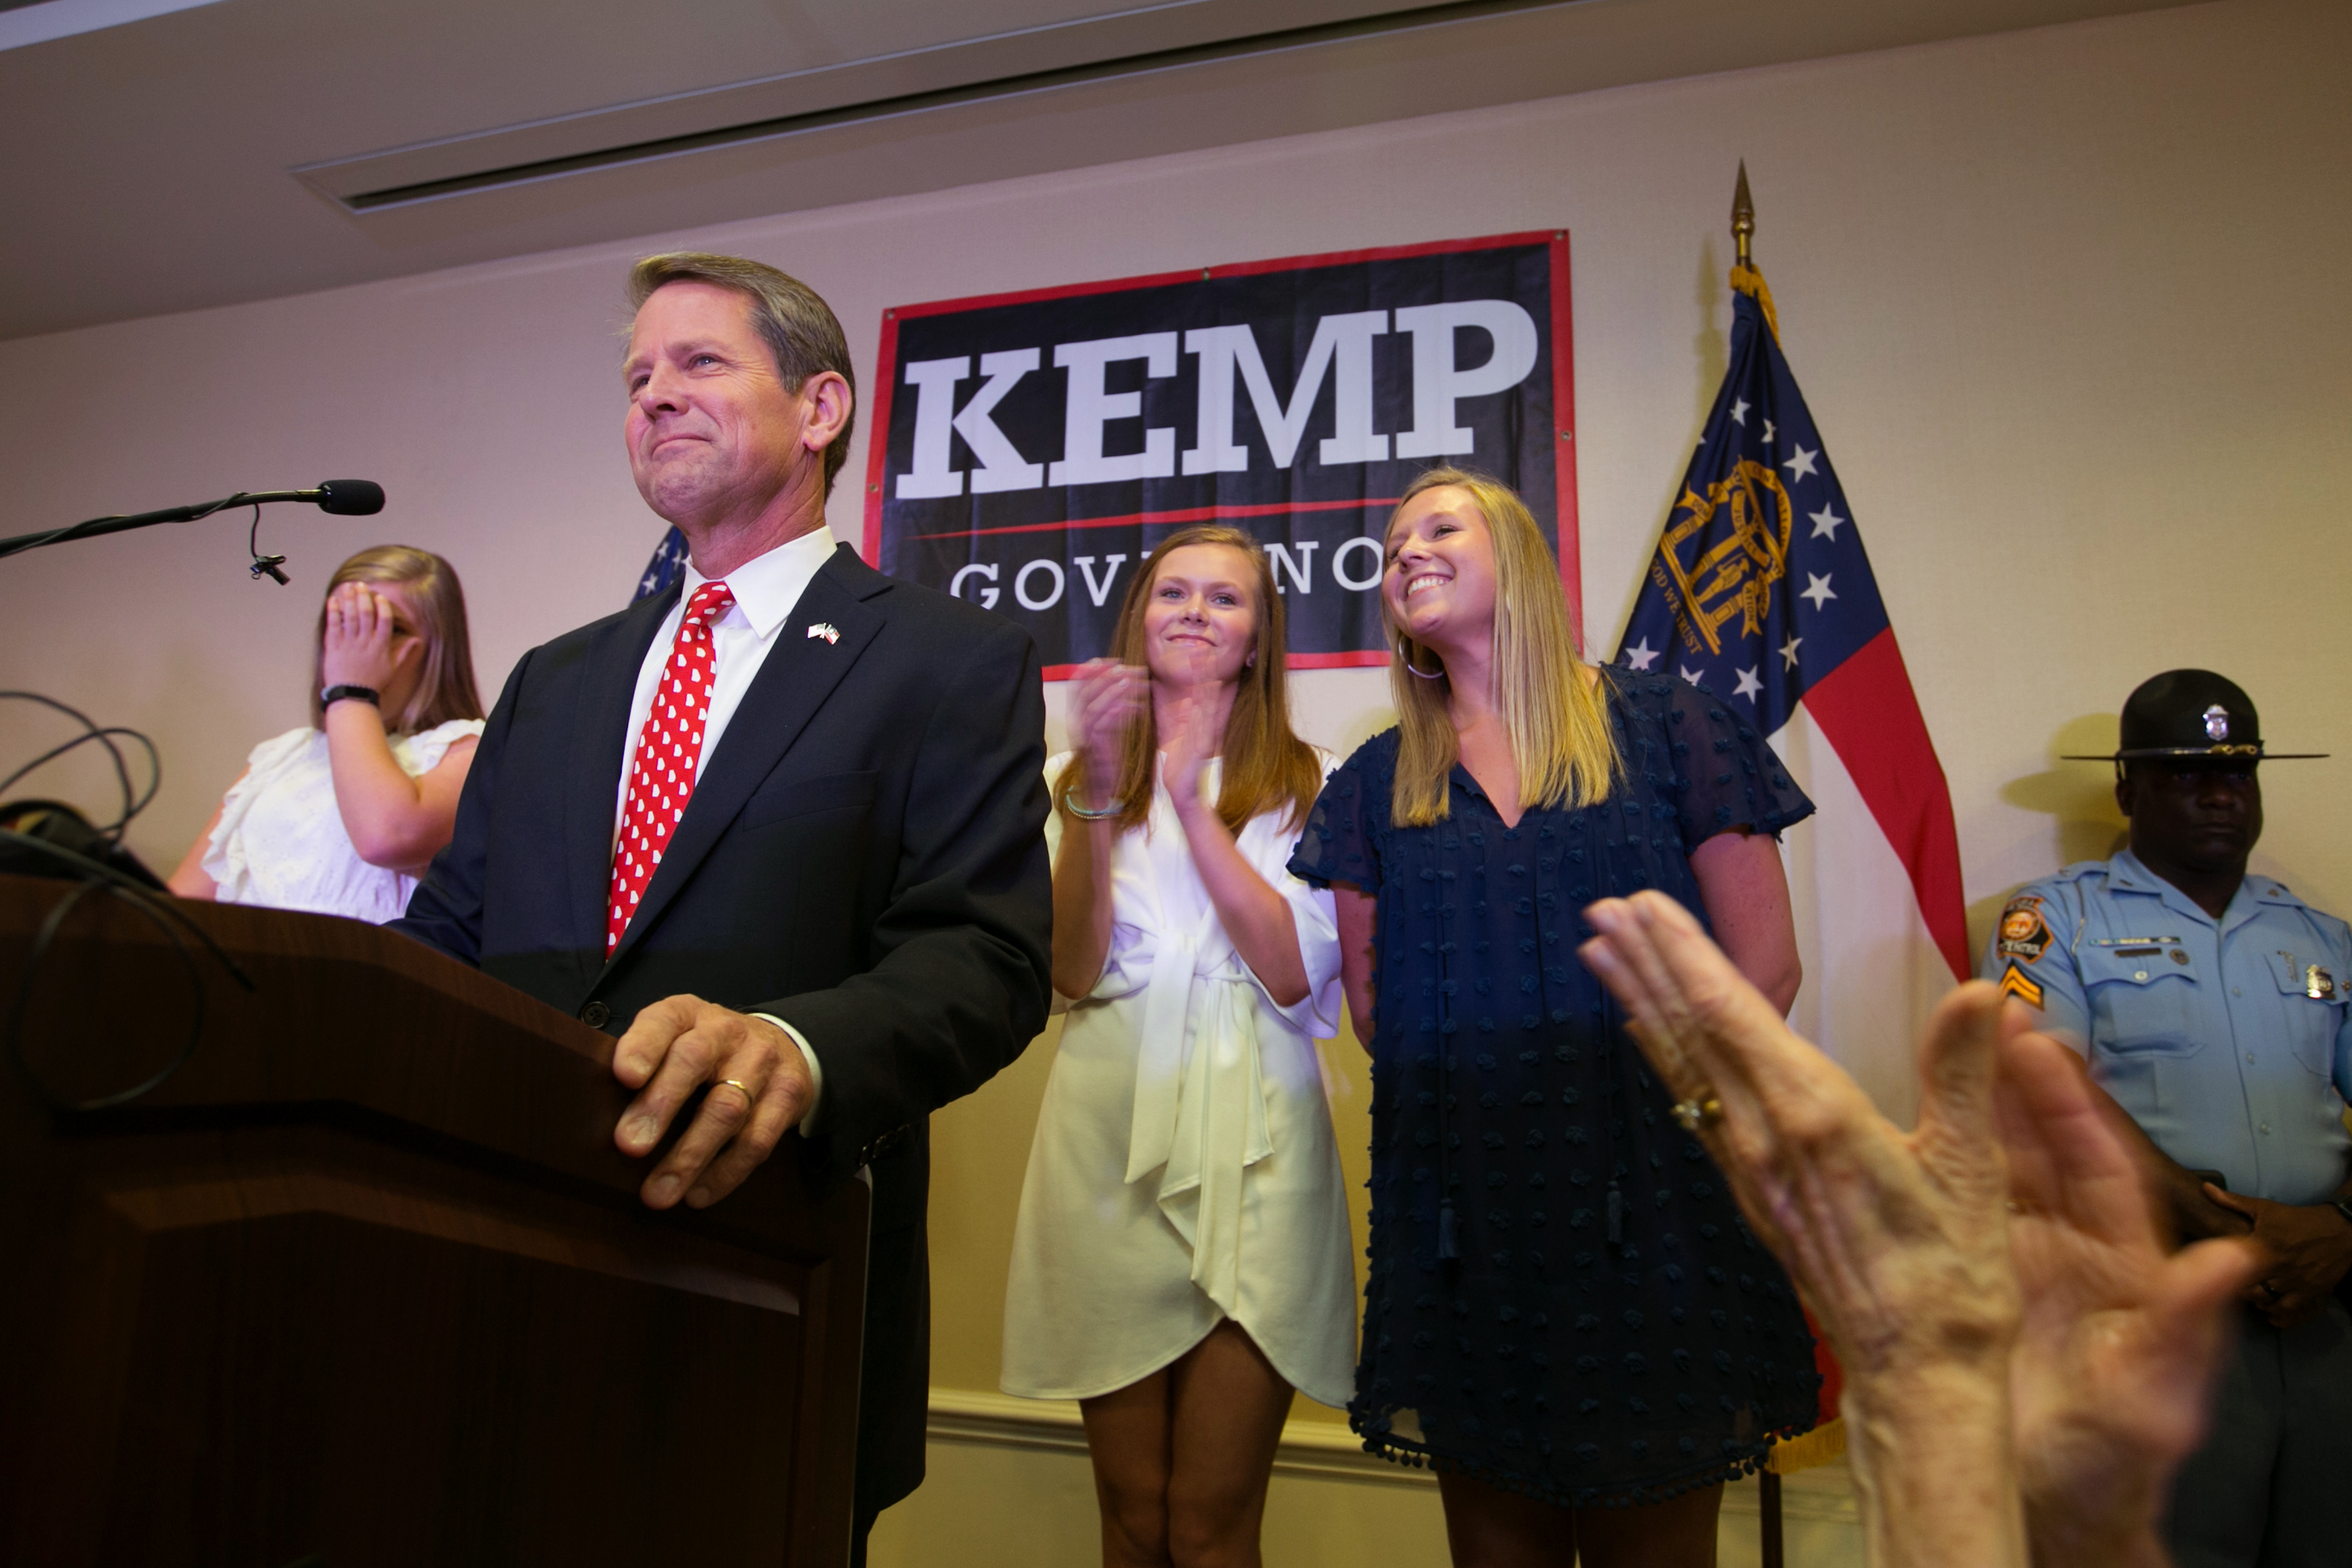 Secretary of State Brian Kemp addresses the audience and declares victory during an election watch party on July 24, 2018 in Athens, Georgia. Jessica McGowan/Getty Images